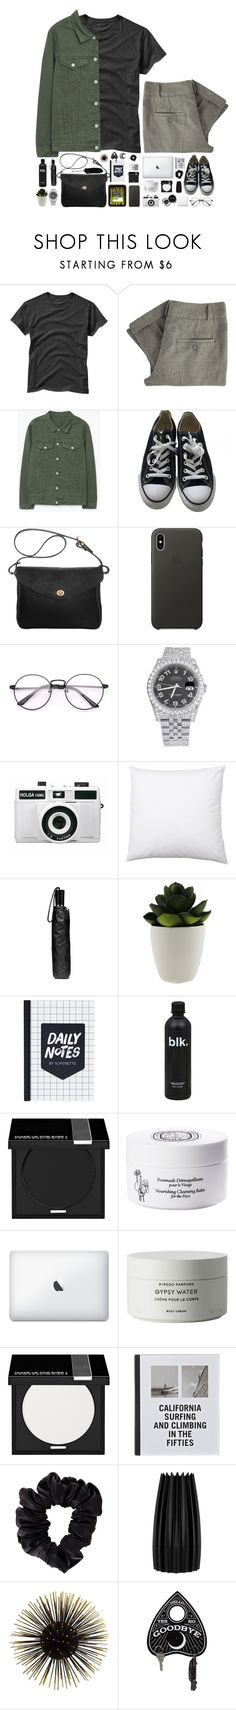 """""""Can you feel their haunting presence?"""" by spottdrossel ❤ liked on Polyvore featuring Gap, Great Plains, MANGO, Converse, Mimi Berry, Apple, Rolex, Bobbi Brown Cosmetics, Holga and Coach"""